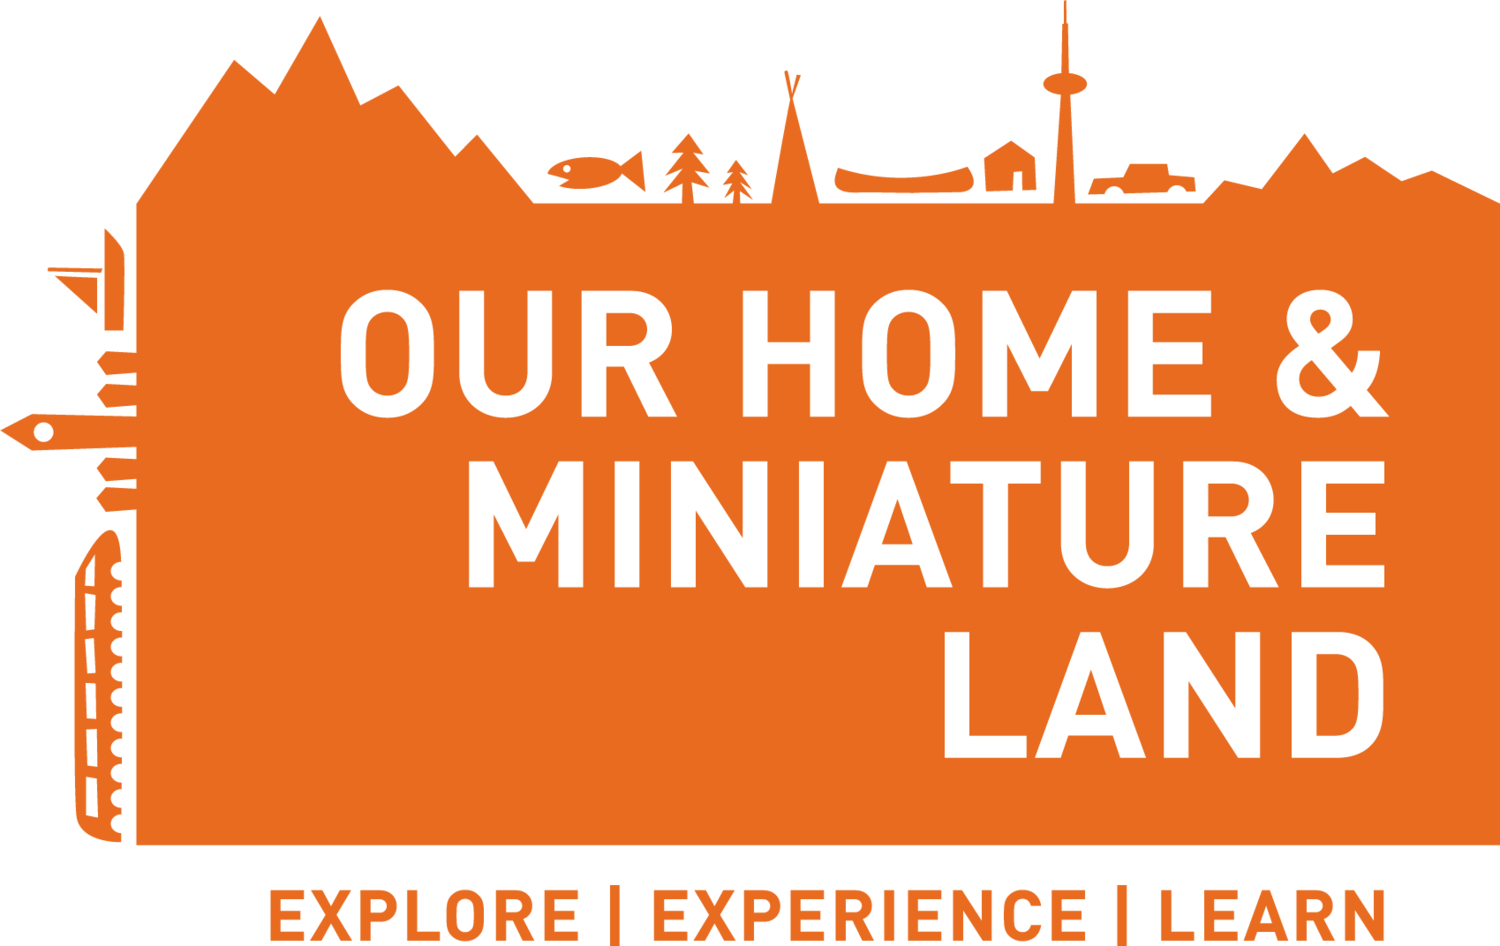 Our Home & Miniature Land